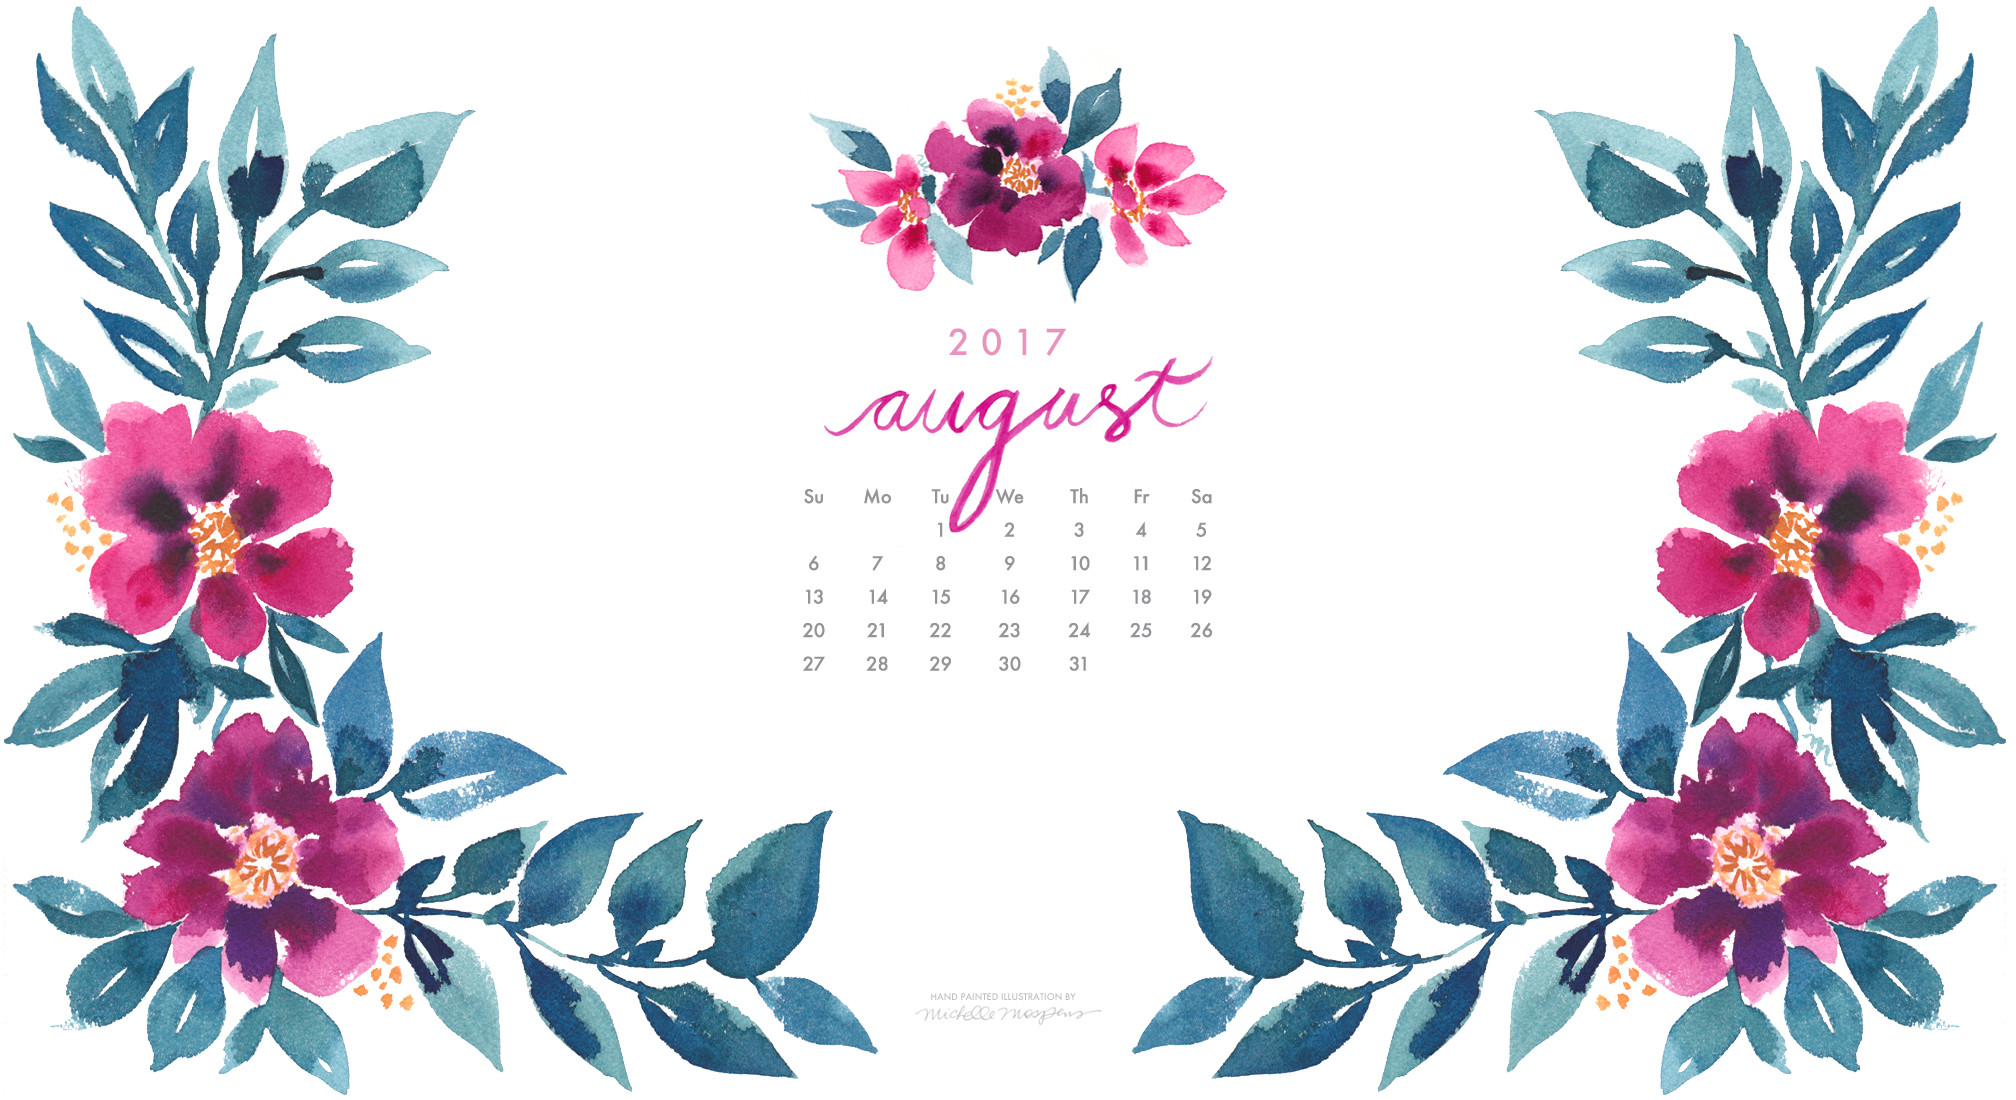 Pretty posy watercolor August 2017 calendar wallpaper for your computer.  100% original art by